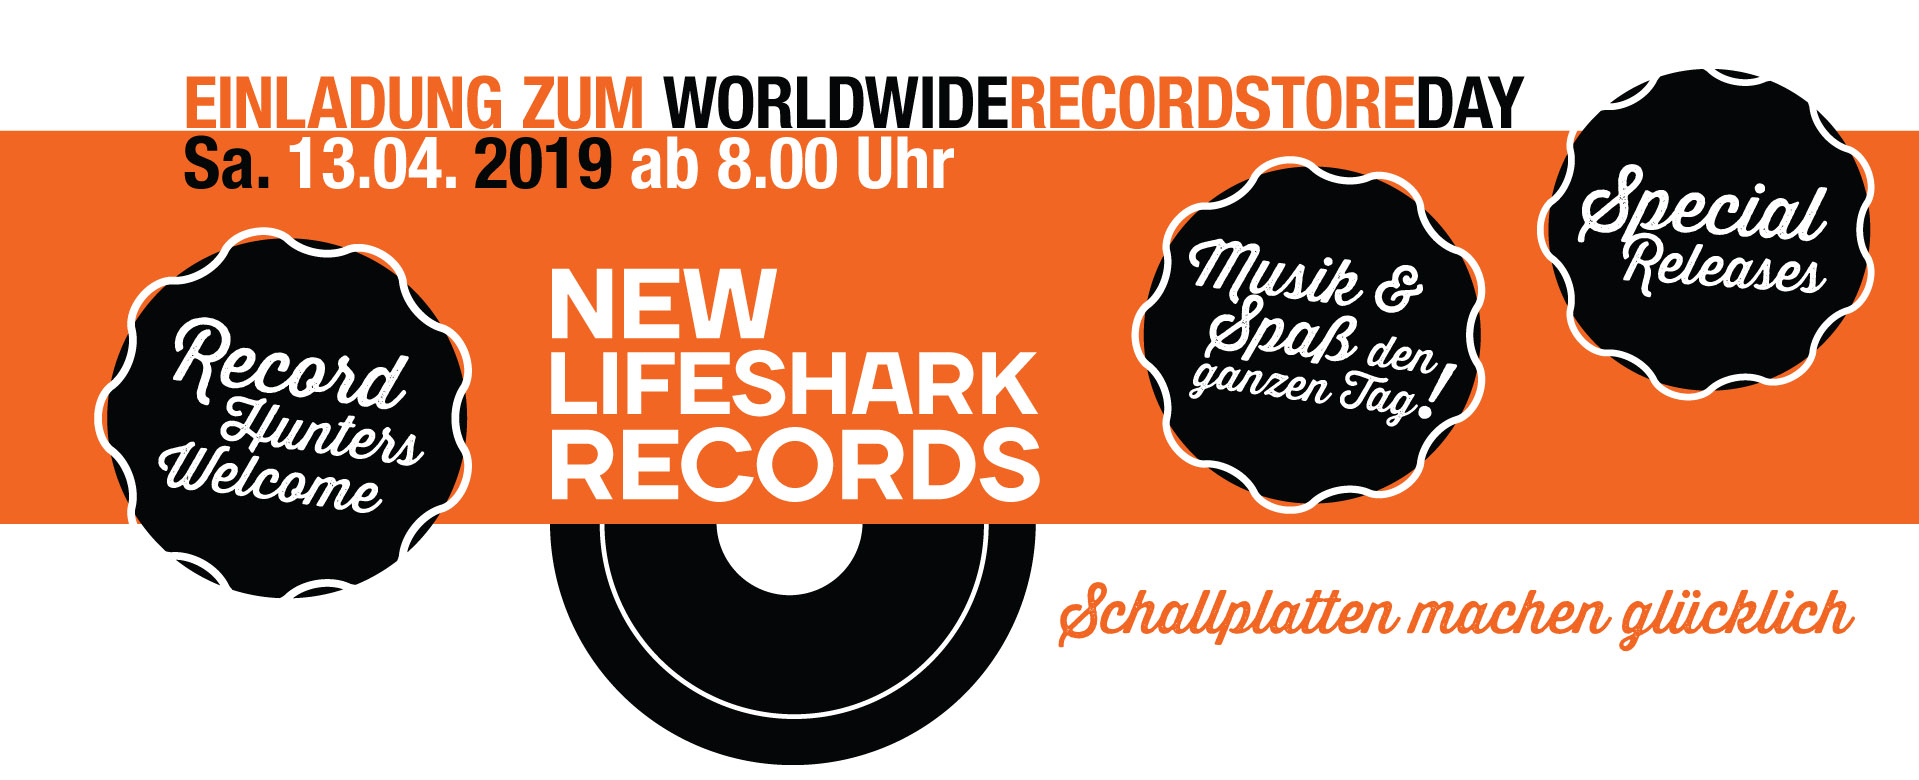 Record Store Day 2019 New Lifeshark Records Essen